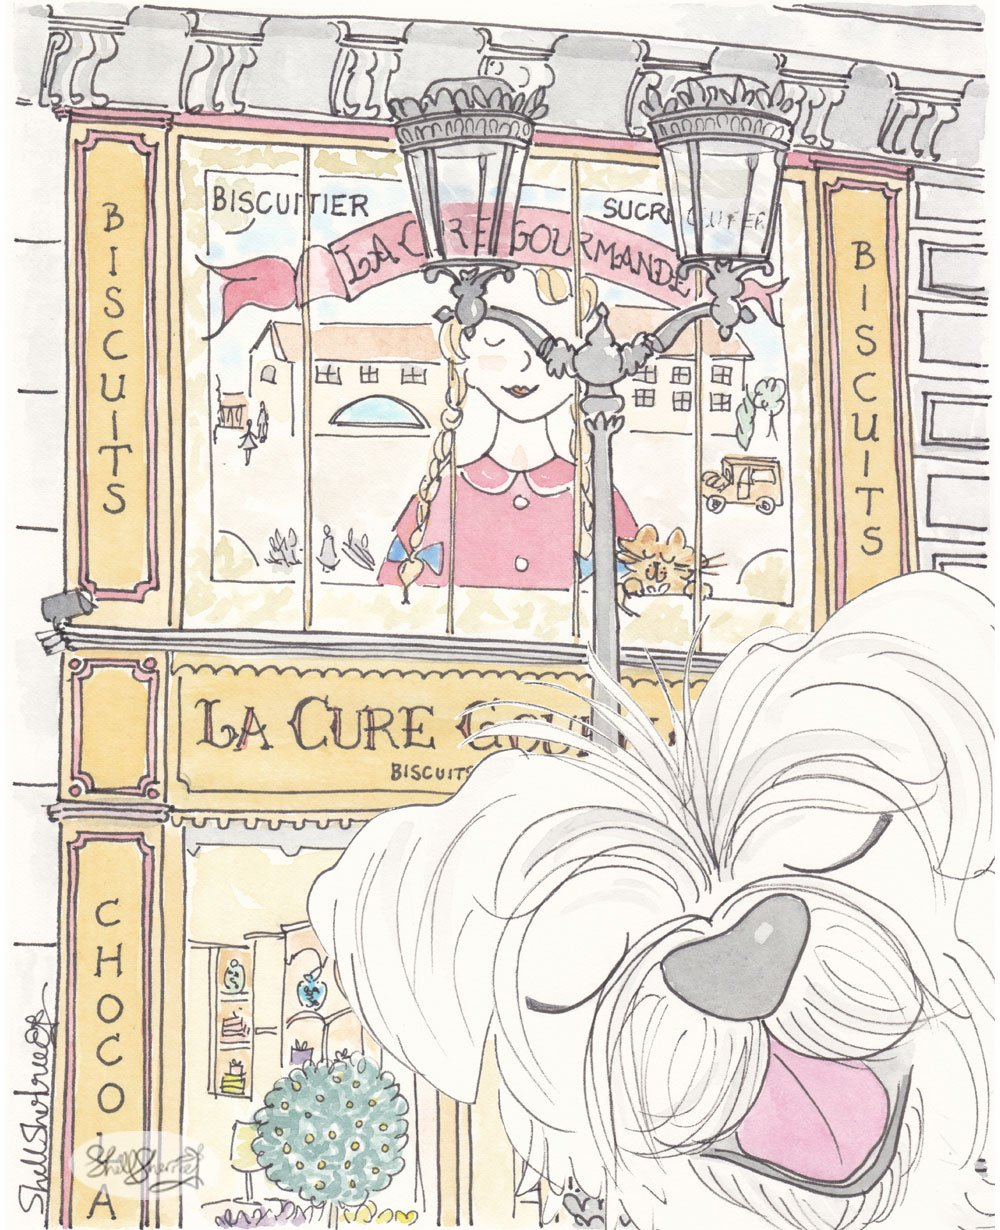 la cure gourmande paris art with white dog by shell sherree